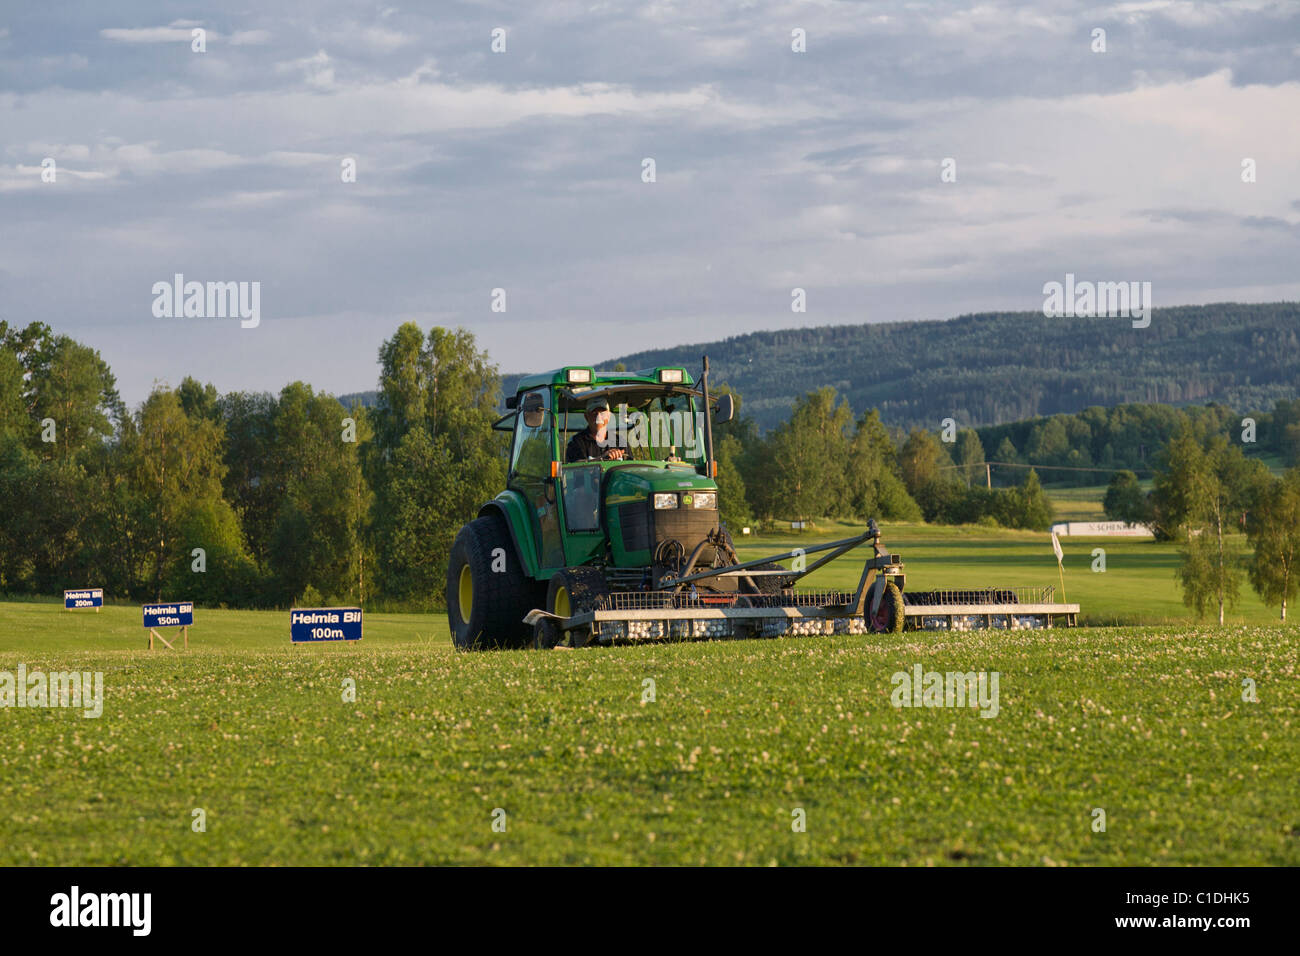 Tractor gathering golf balls at a driving range at the end of the day in Varmland, Sweden. Stock Photo